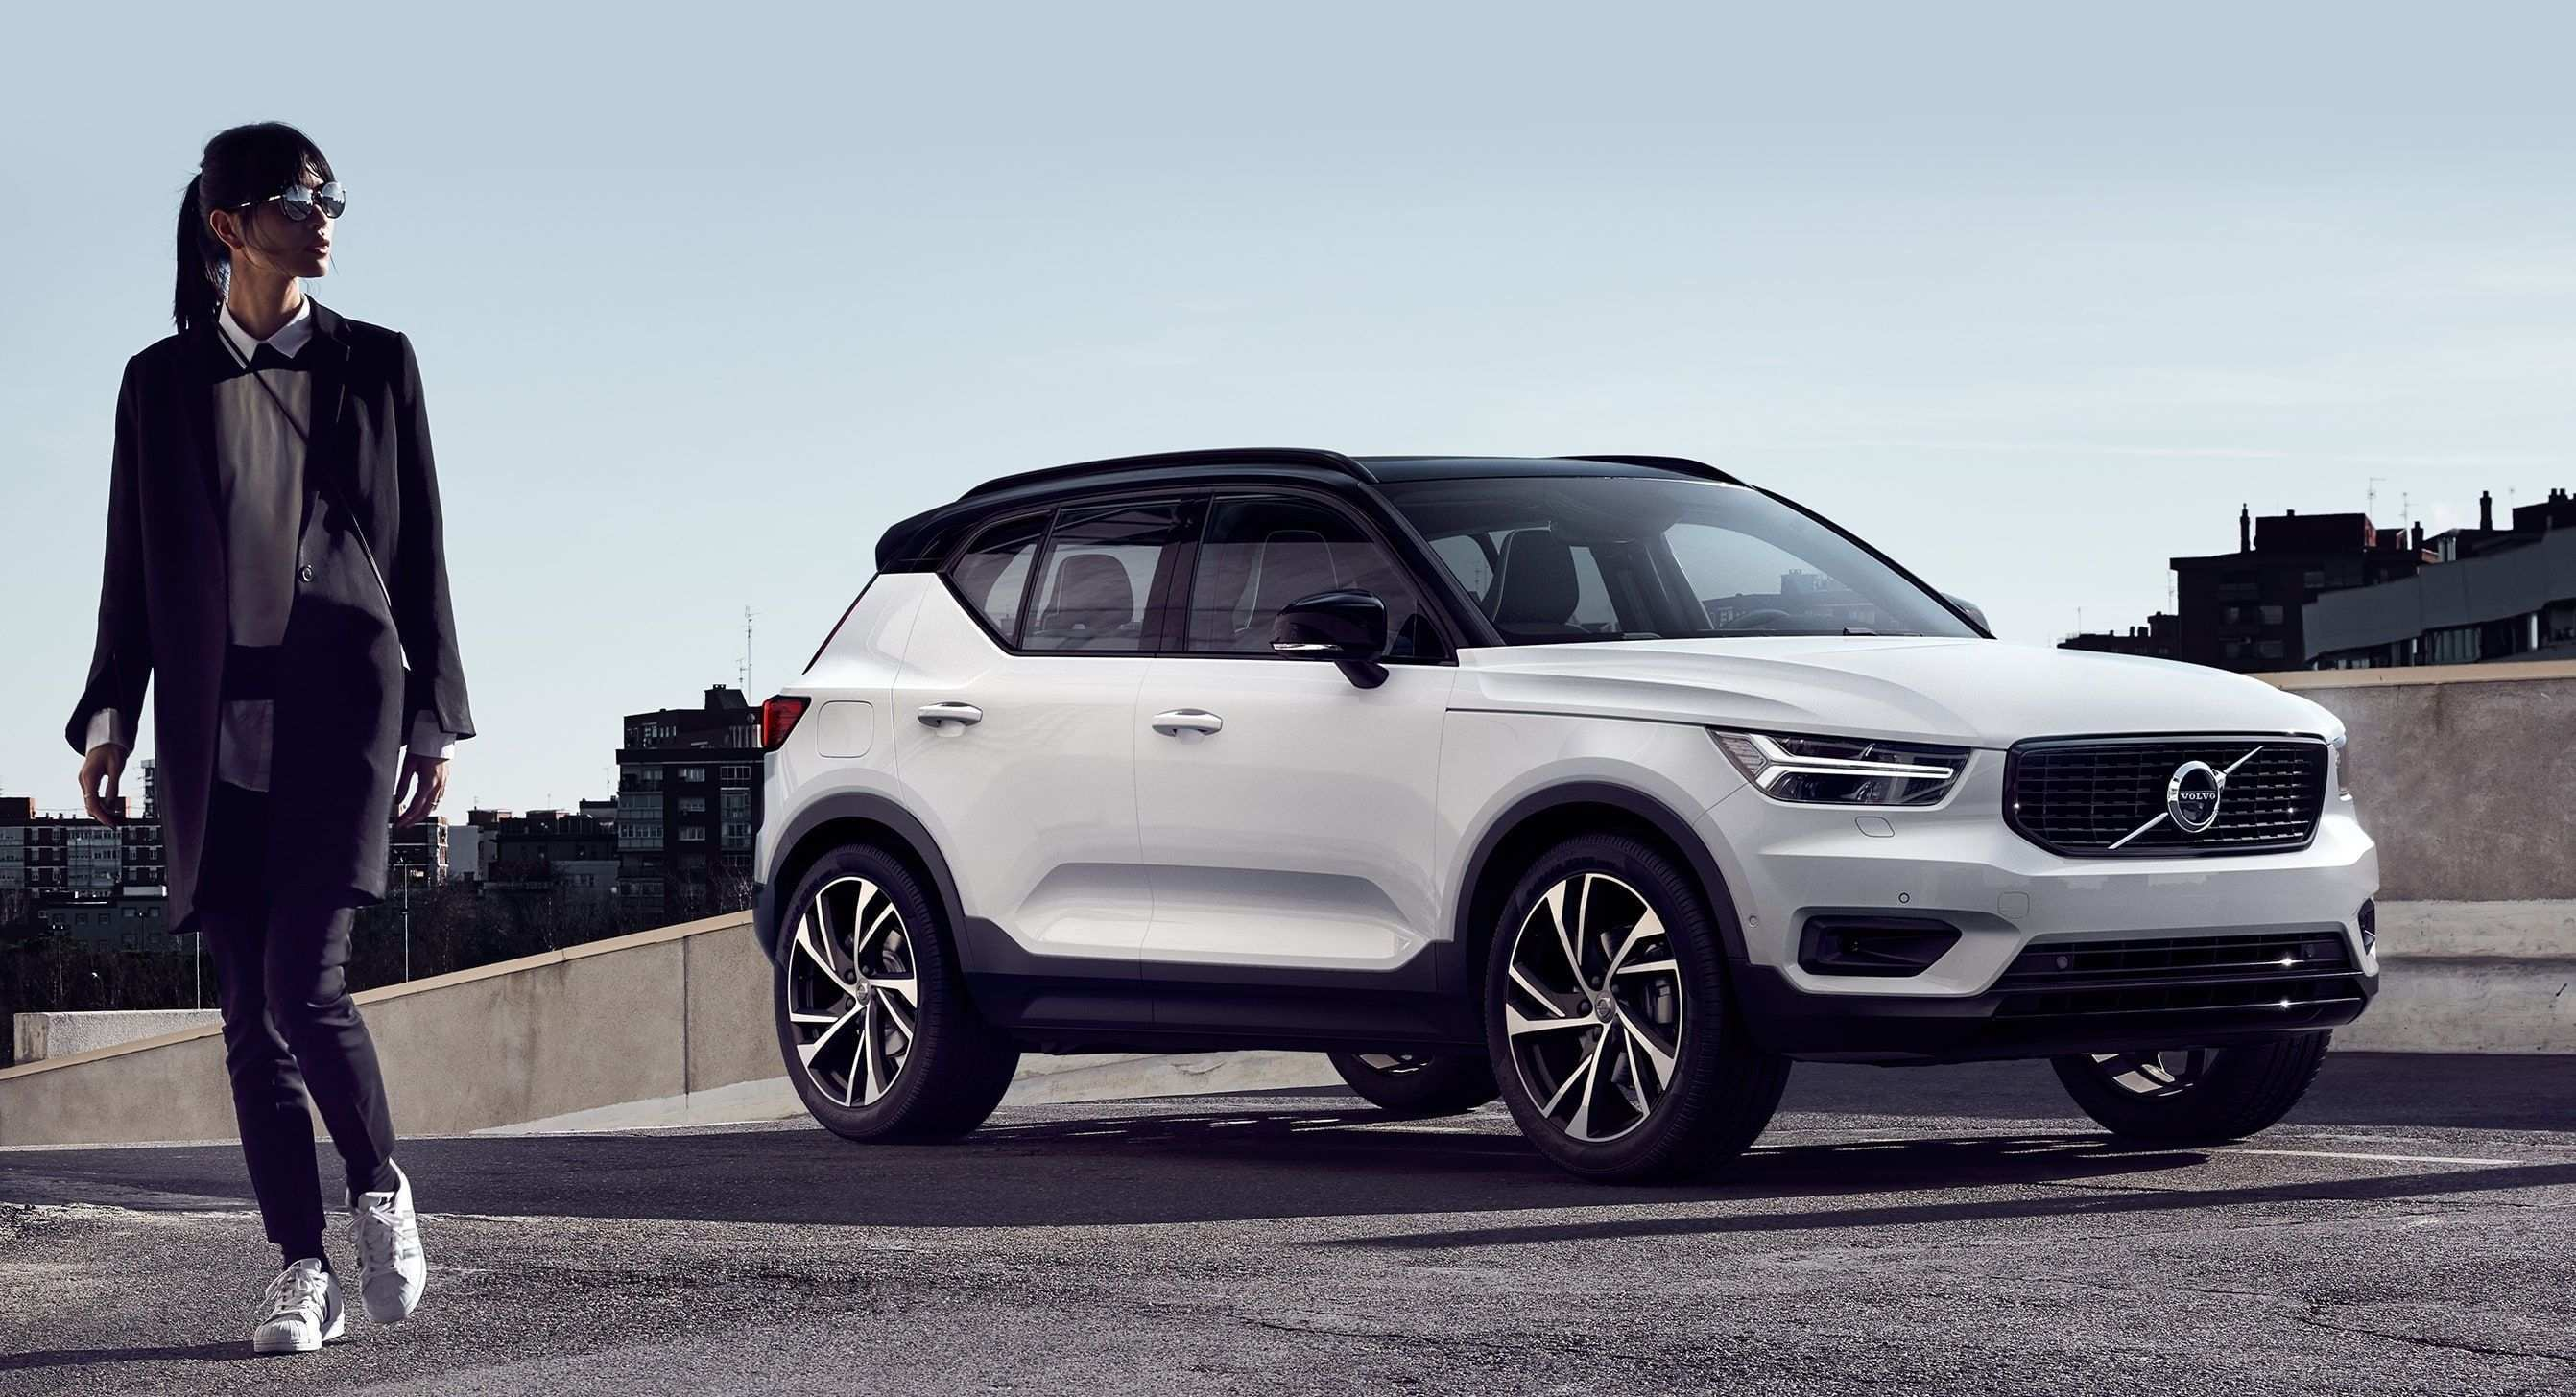 92 The Best Volvo Electric Suv 2019 First Drive Price Performance And Review Rumors by Best Volvo Electric Suv 2019 First Drive Price Performance And Review